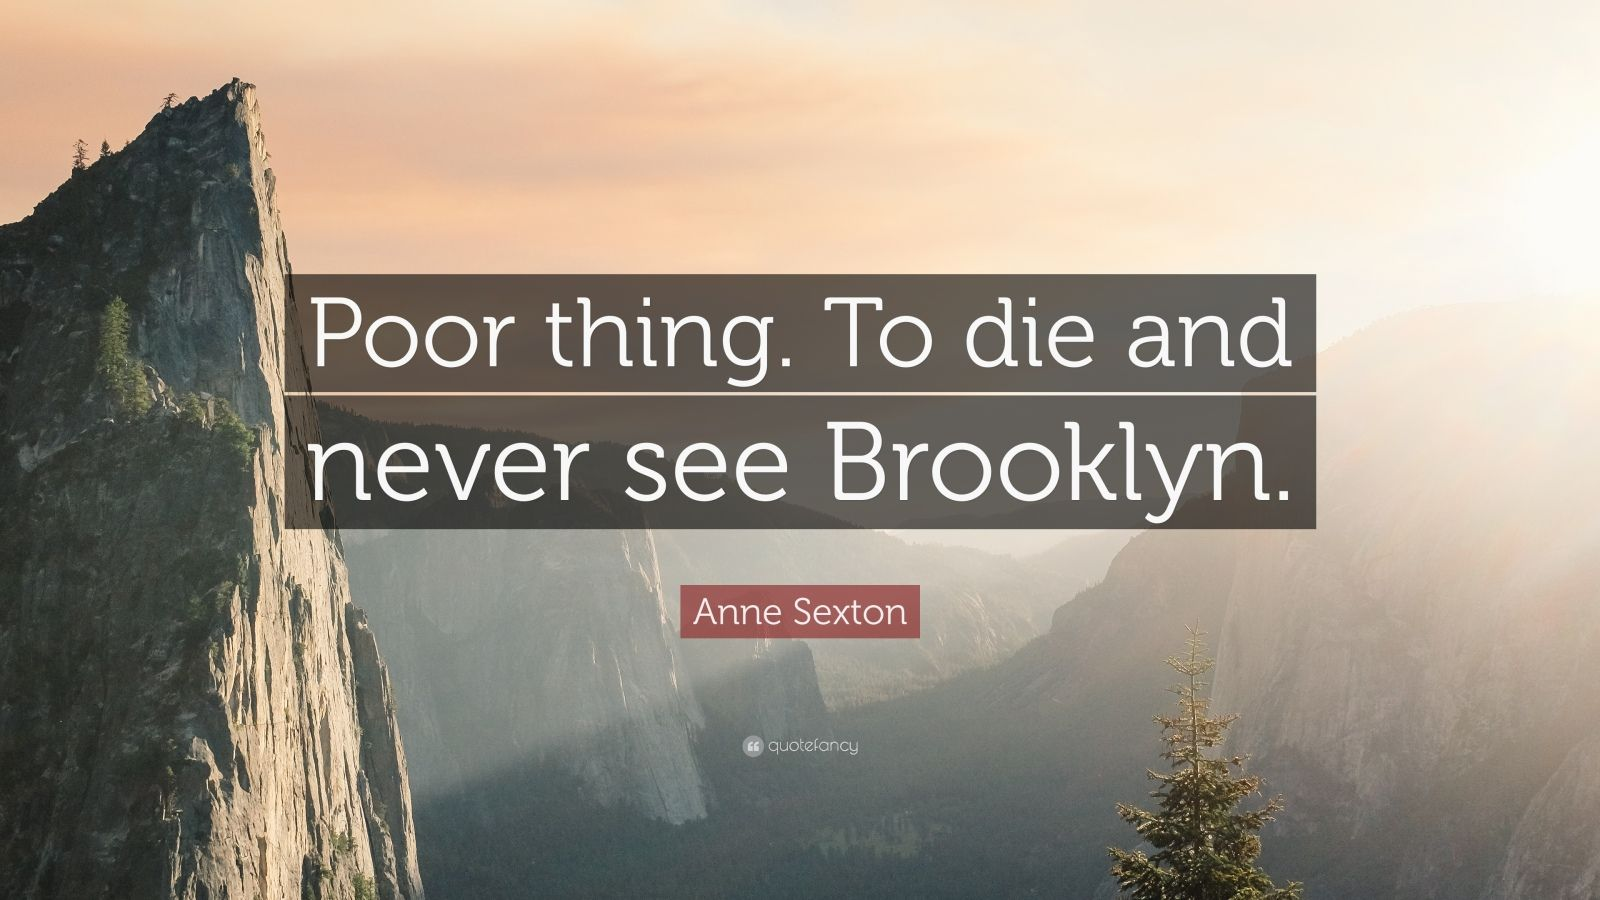 anne sexton wanting to die